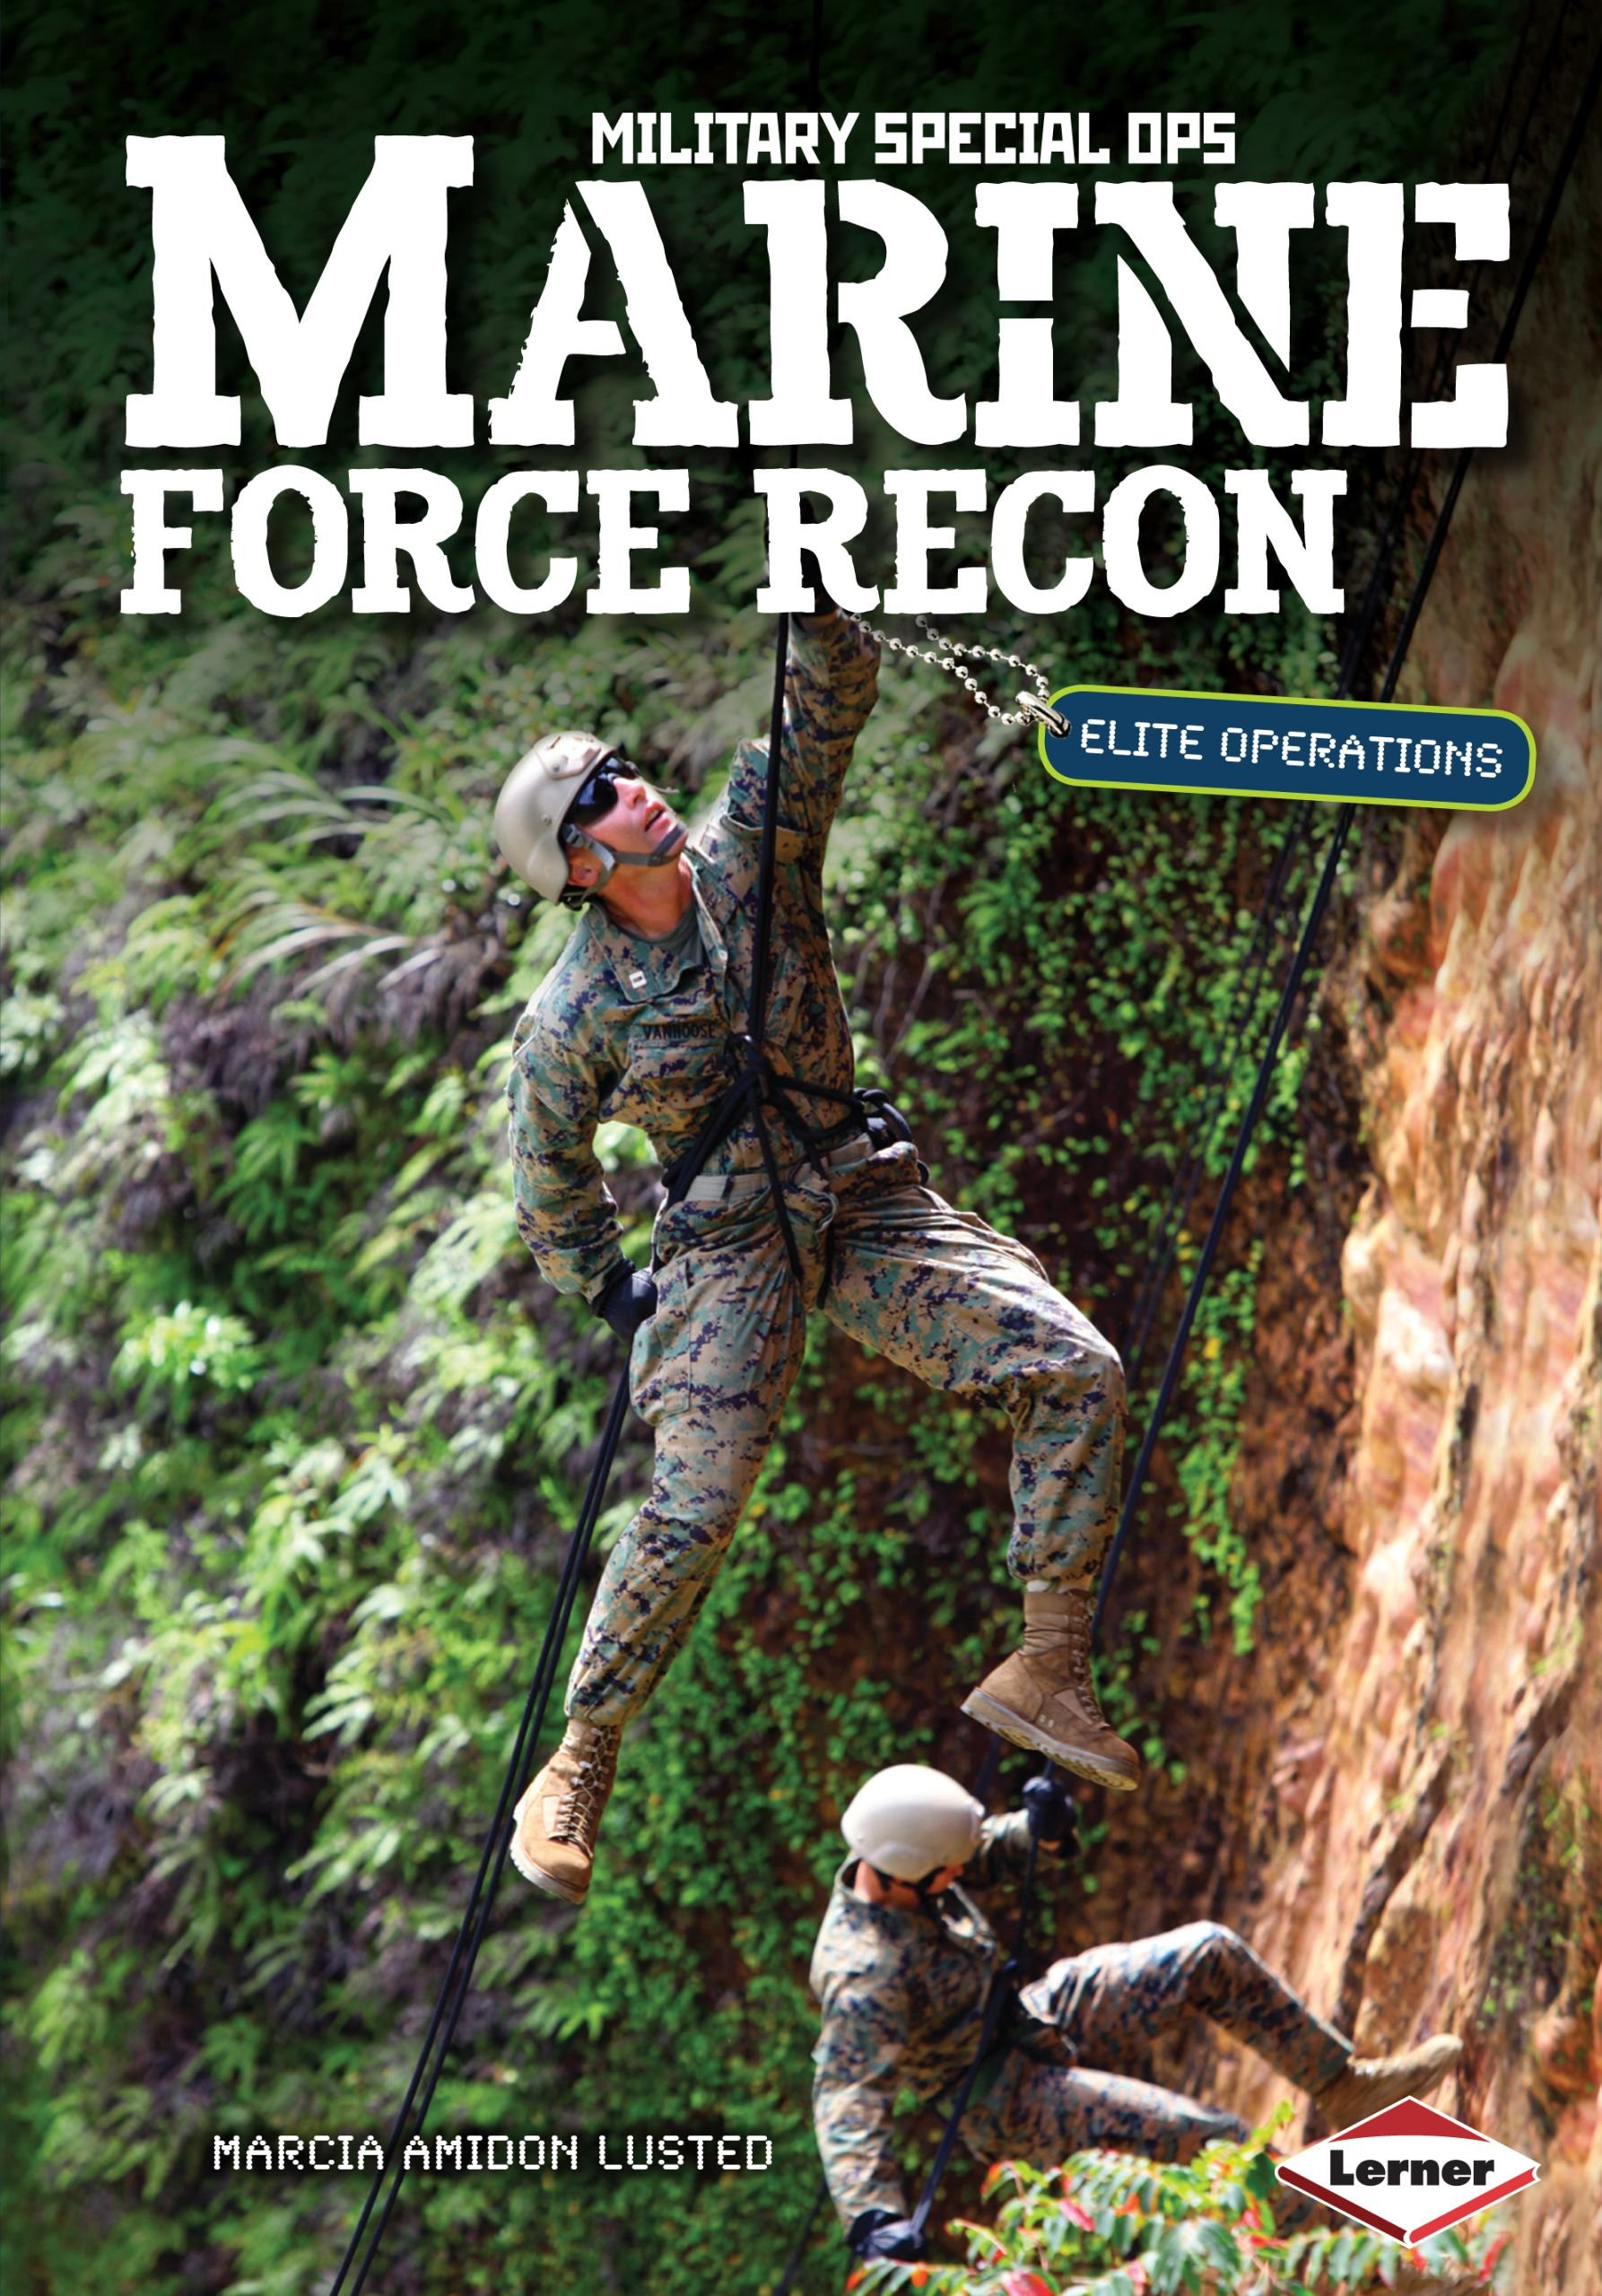 Marine Force Recon: Elite Operations (Military Special Ops)